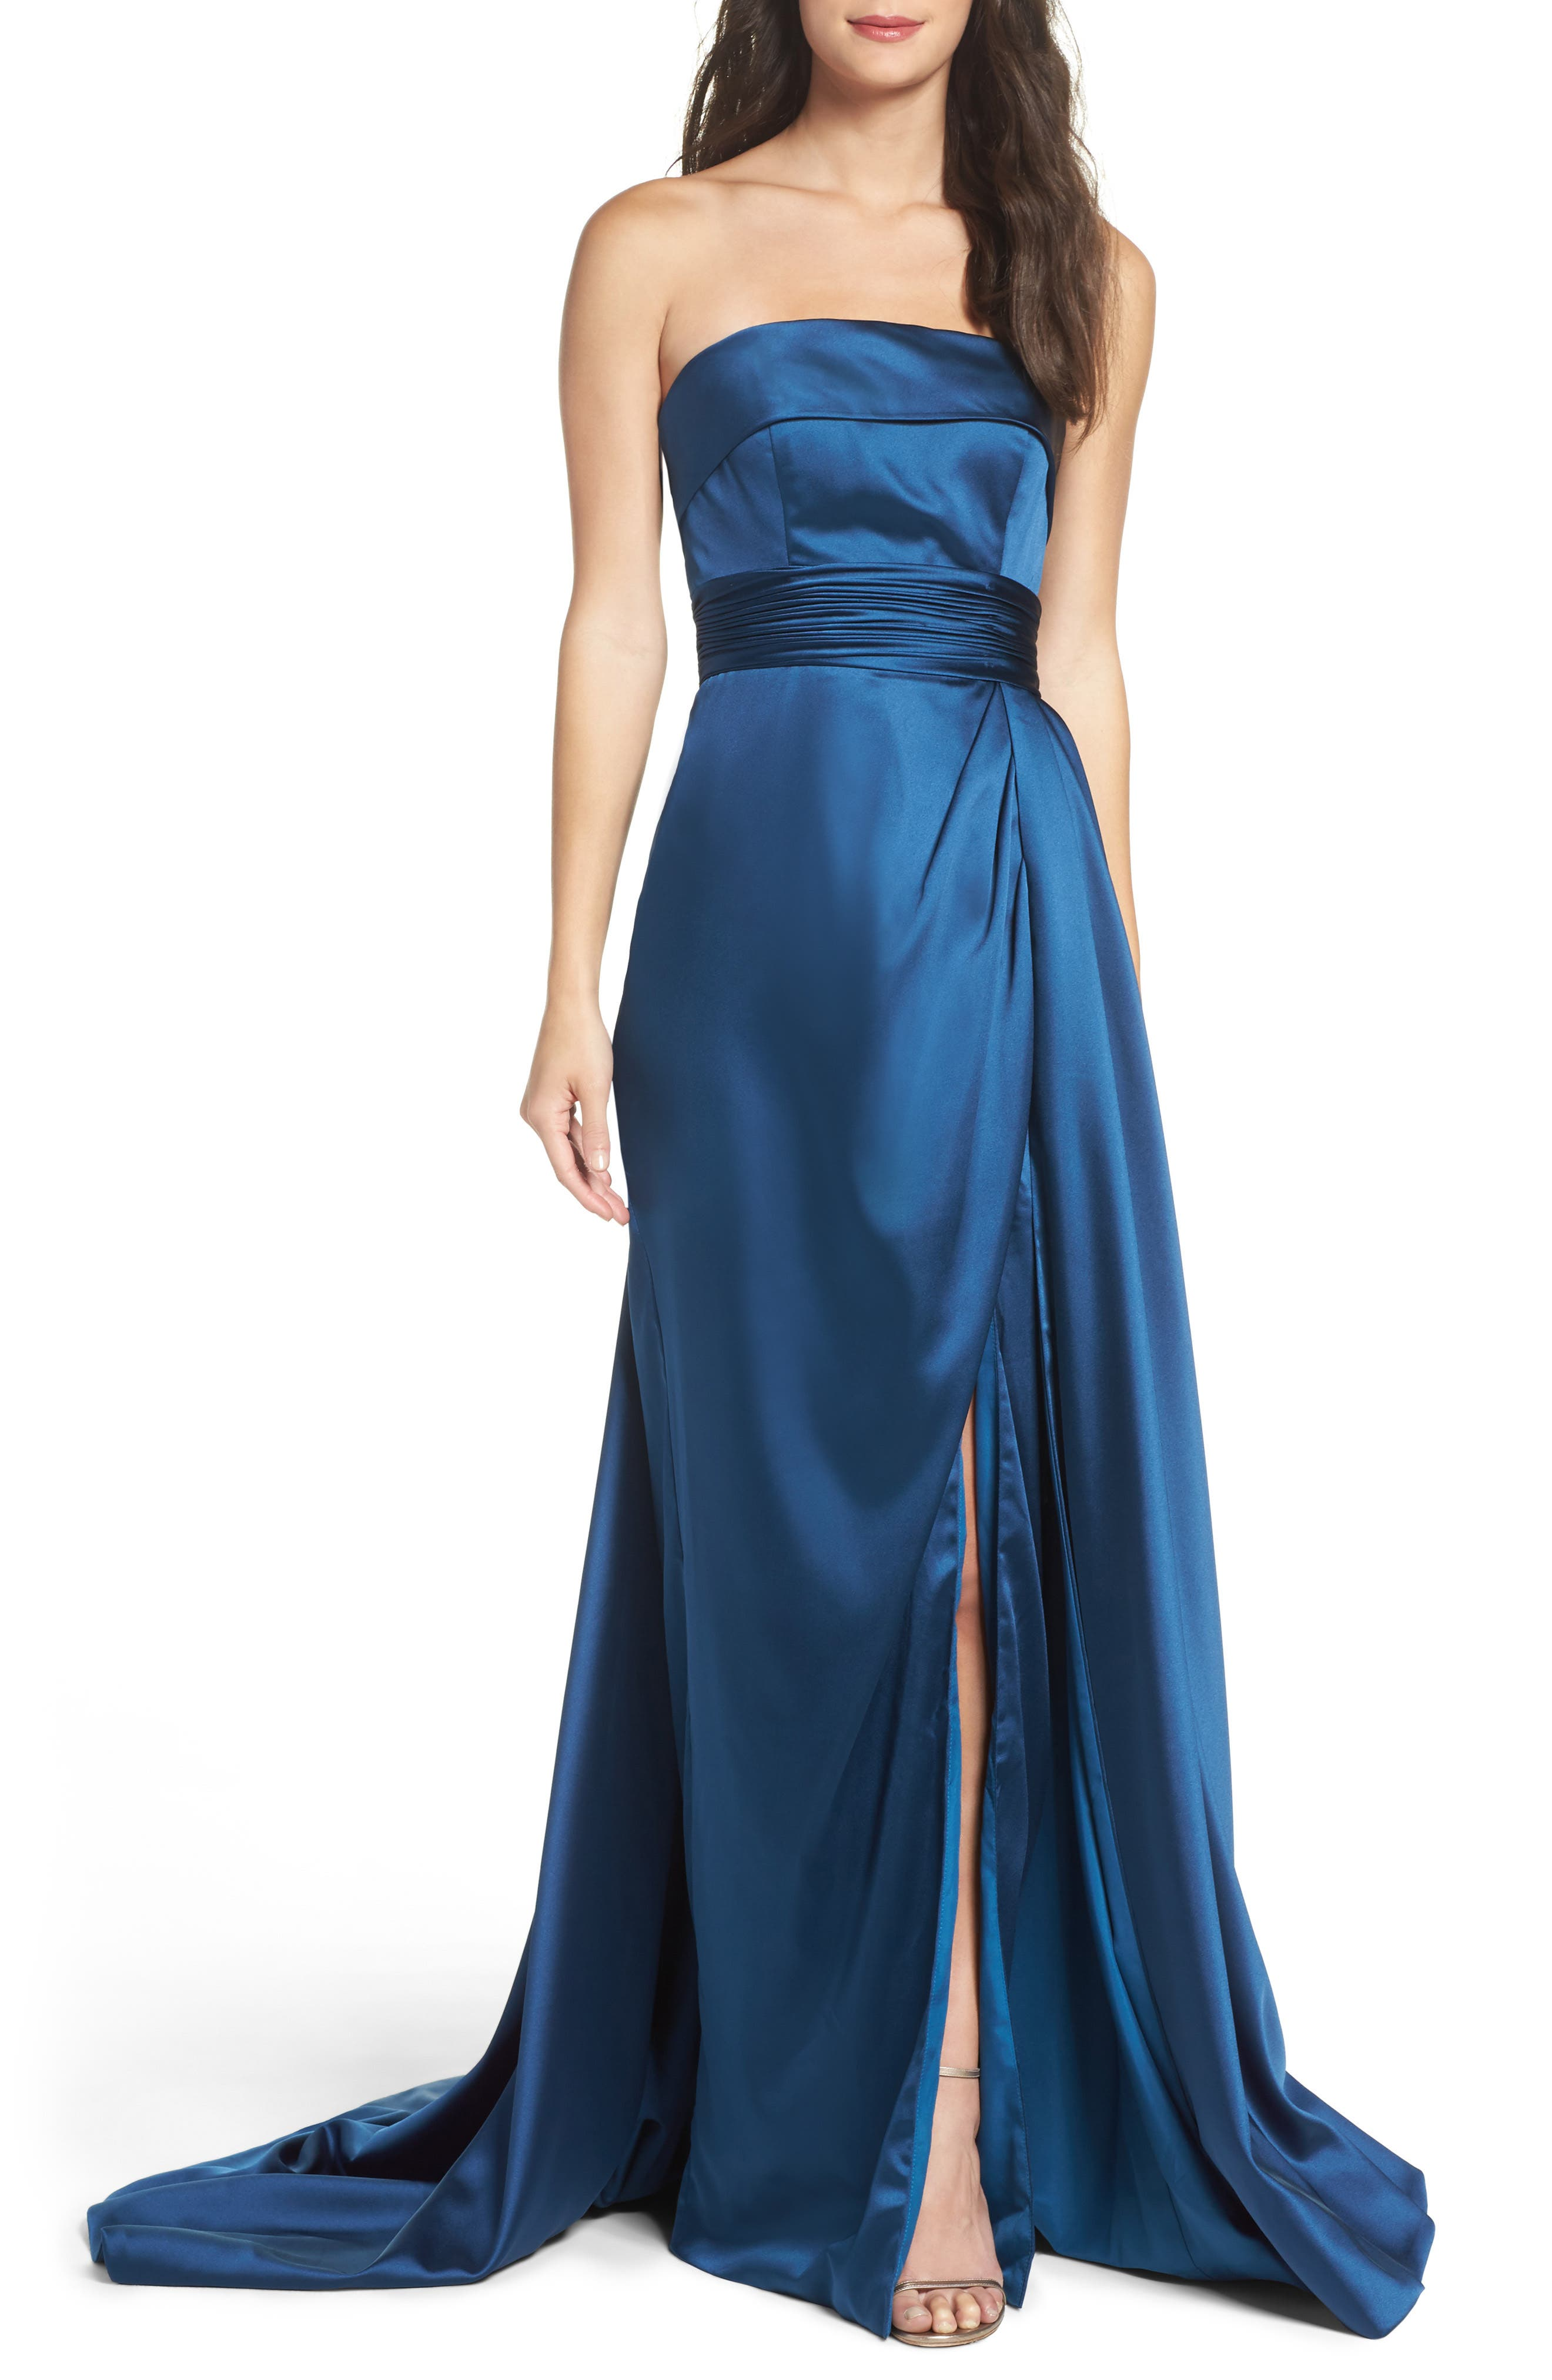 Alternate Image 1 Selected - Mac Duggal Ruched Strapless Satin Gown